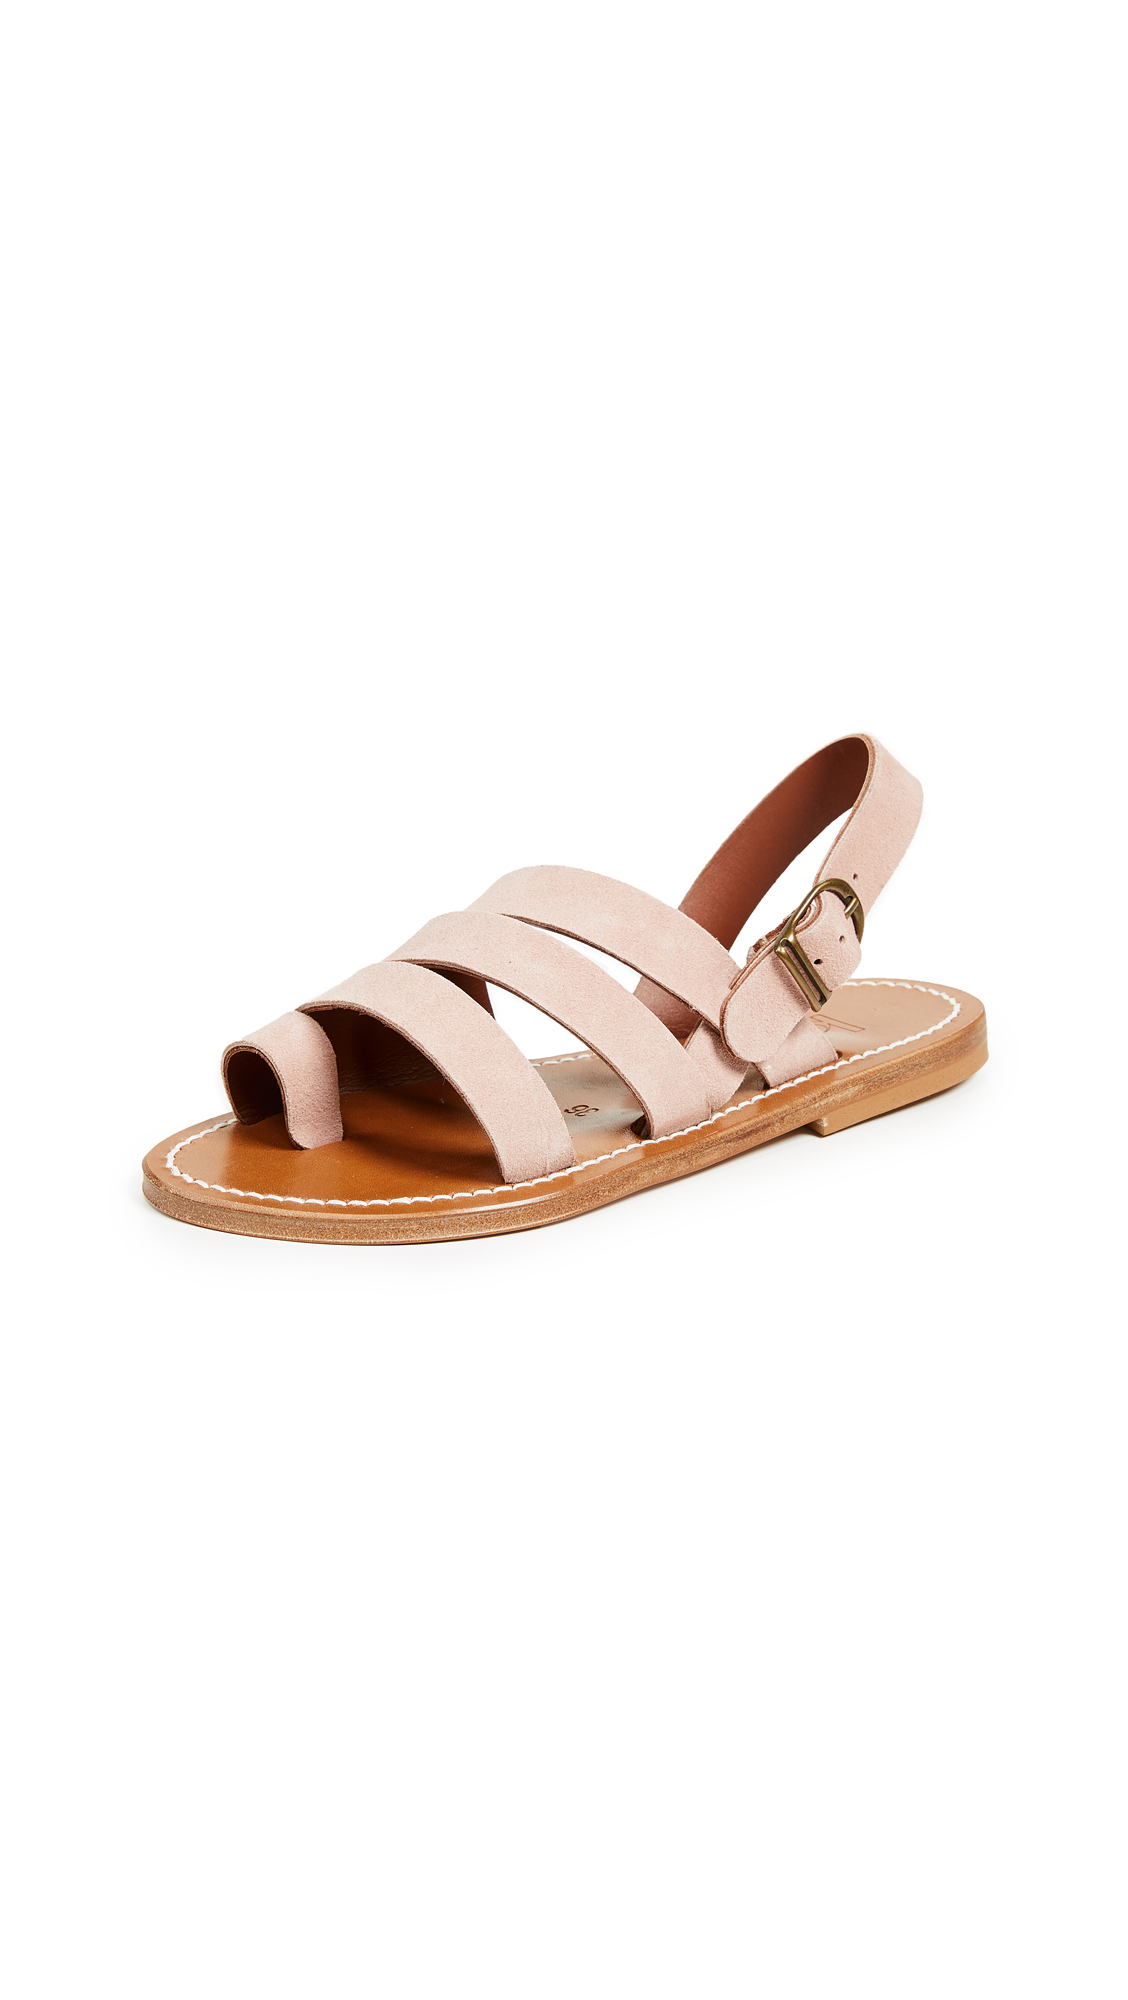 K. Jacques Frodon Sandals - Velours Faitor